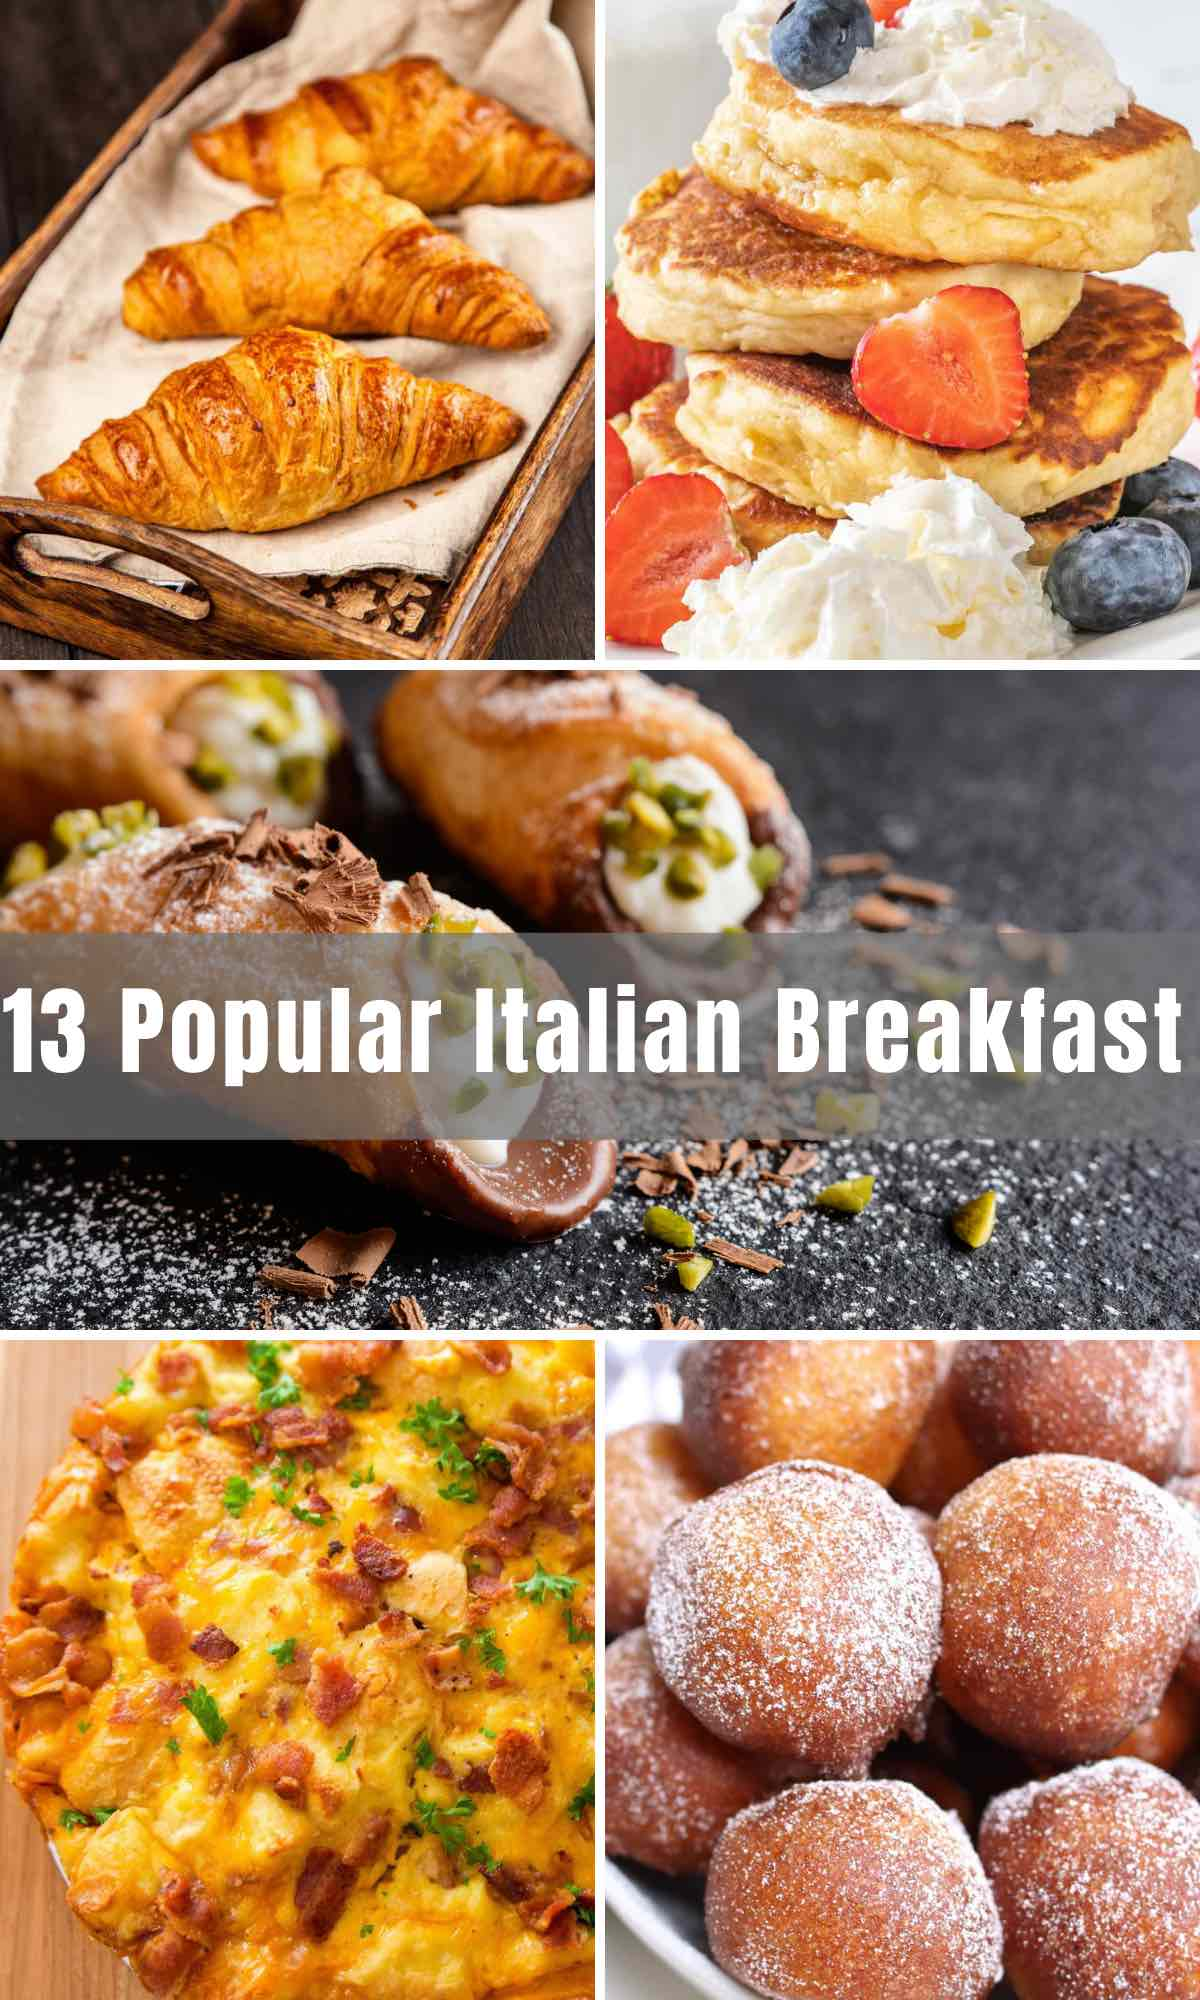 We've rounded up the 13 best Italian Breakfast ideas ever! From traditional Italian egg dishes to typical Italian breakfast pastries and everything in between, we'll take you through 13 delicious foods and drinks below that I'm sure you and your family will love!